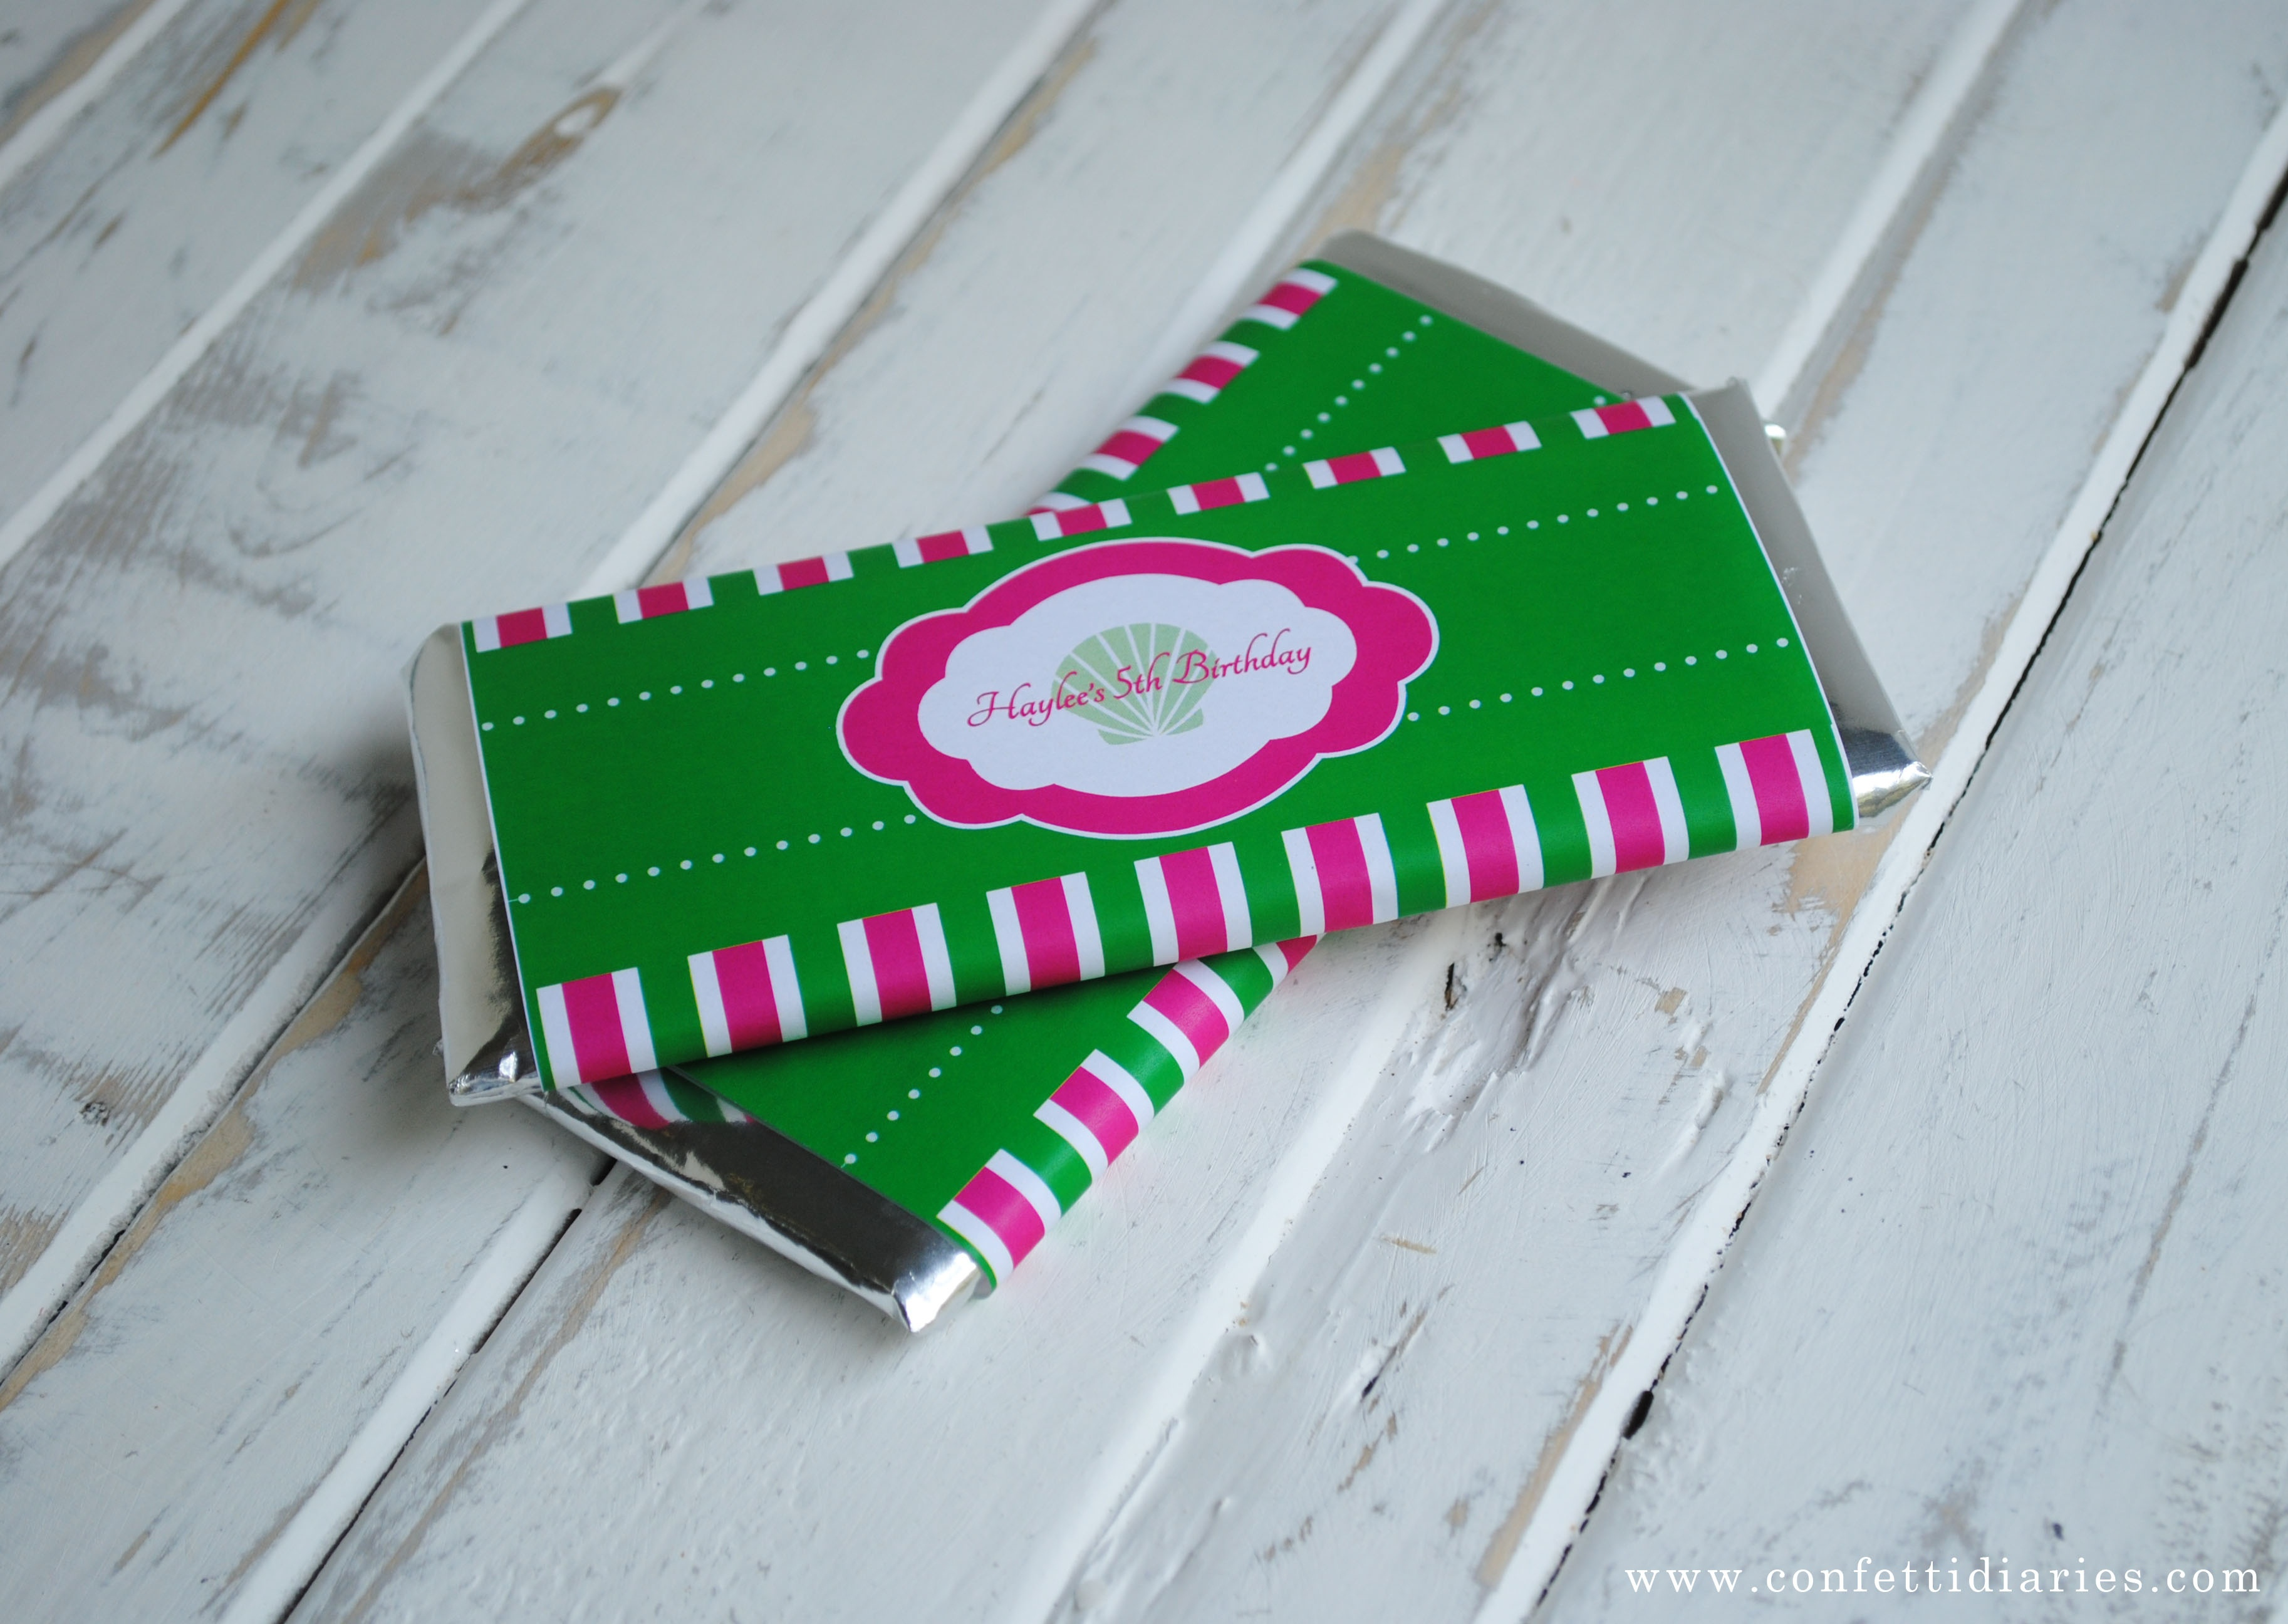 Free Printable Candy Bar Wrapper Templates - Katarina's Paperie - Free Printable Candy Bar Wrappers